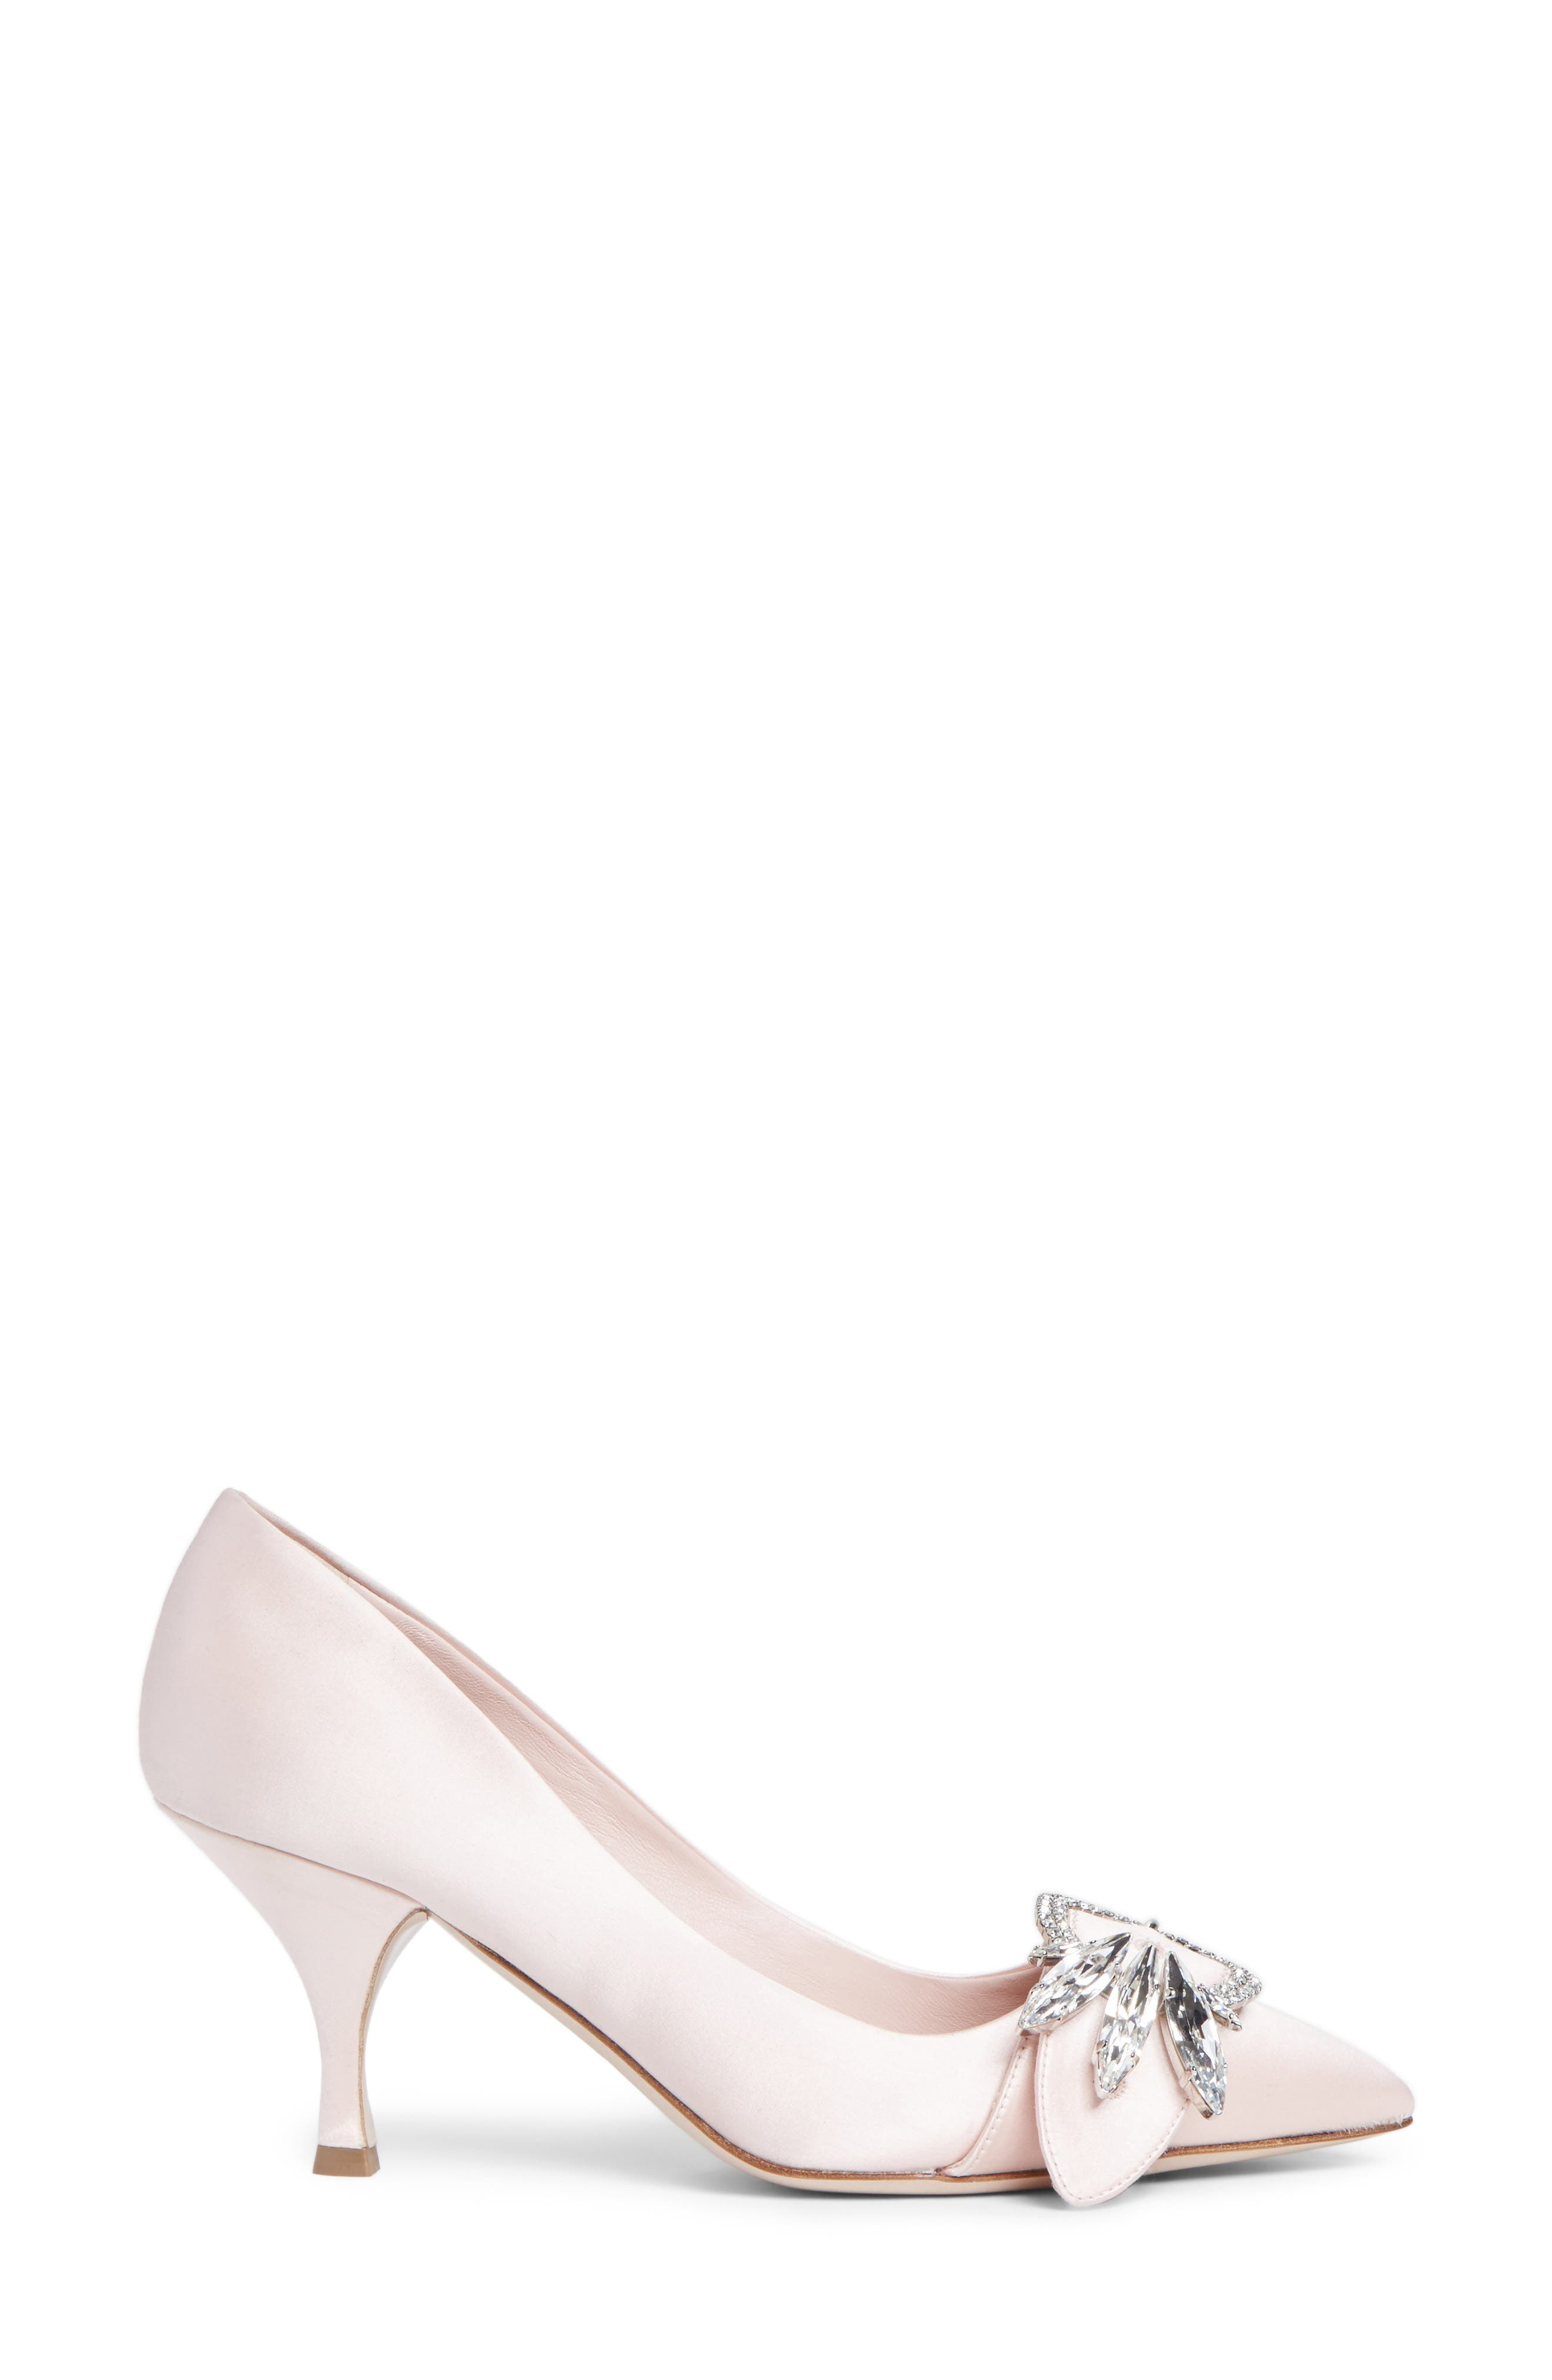 Crystal Buckle Pump,                             Alternate thumbnail 3, color,                             652